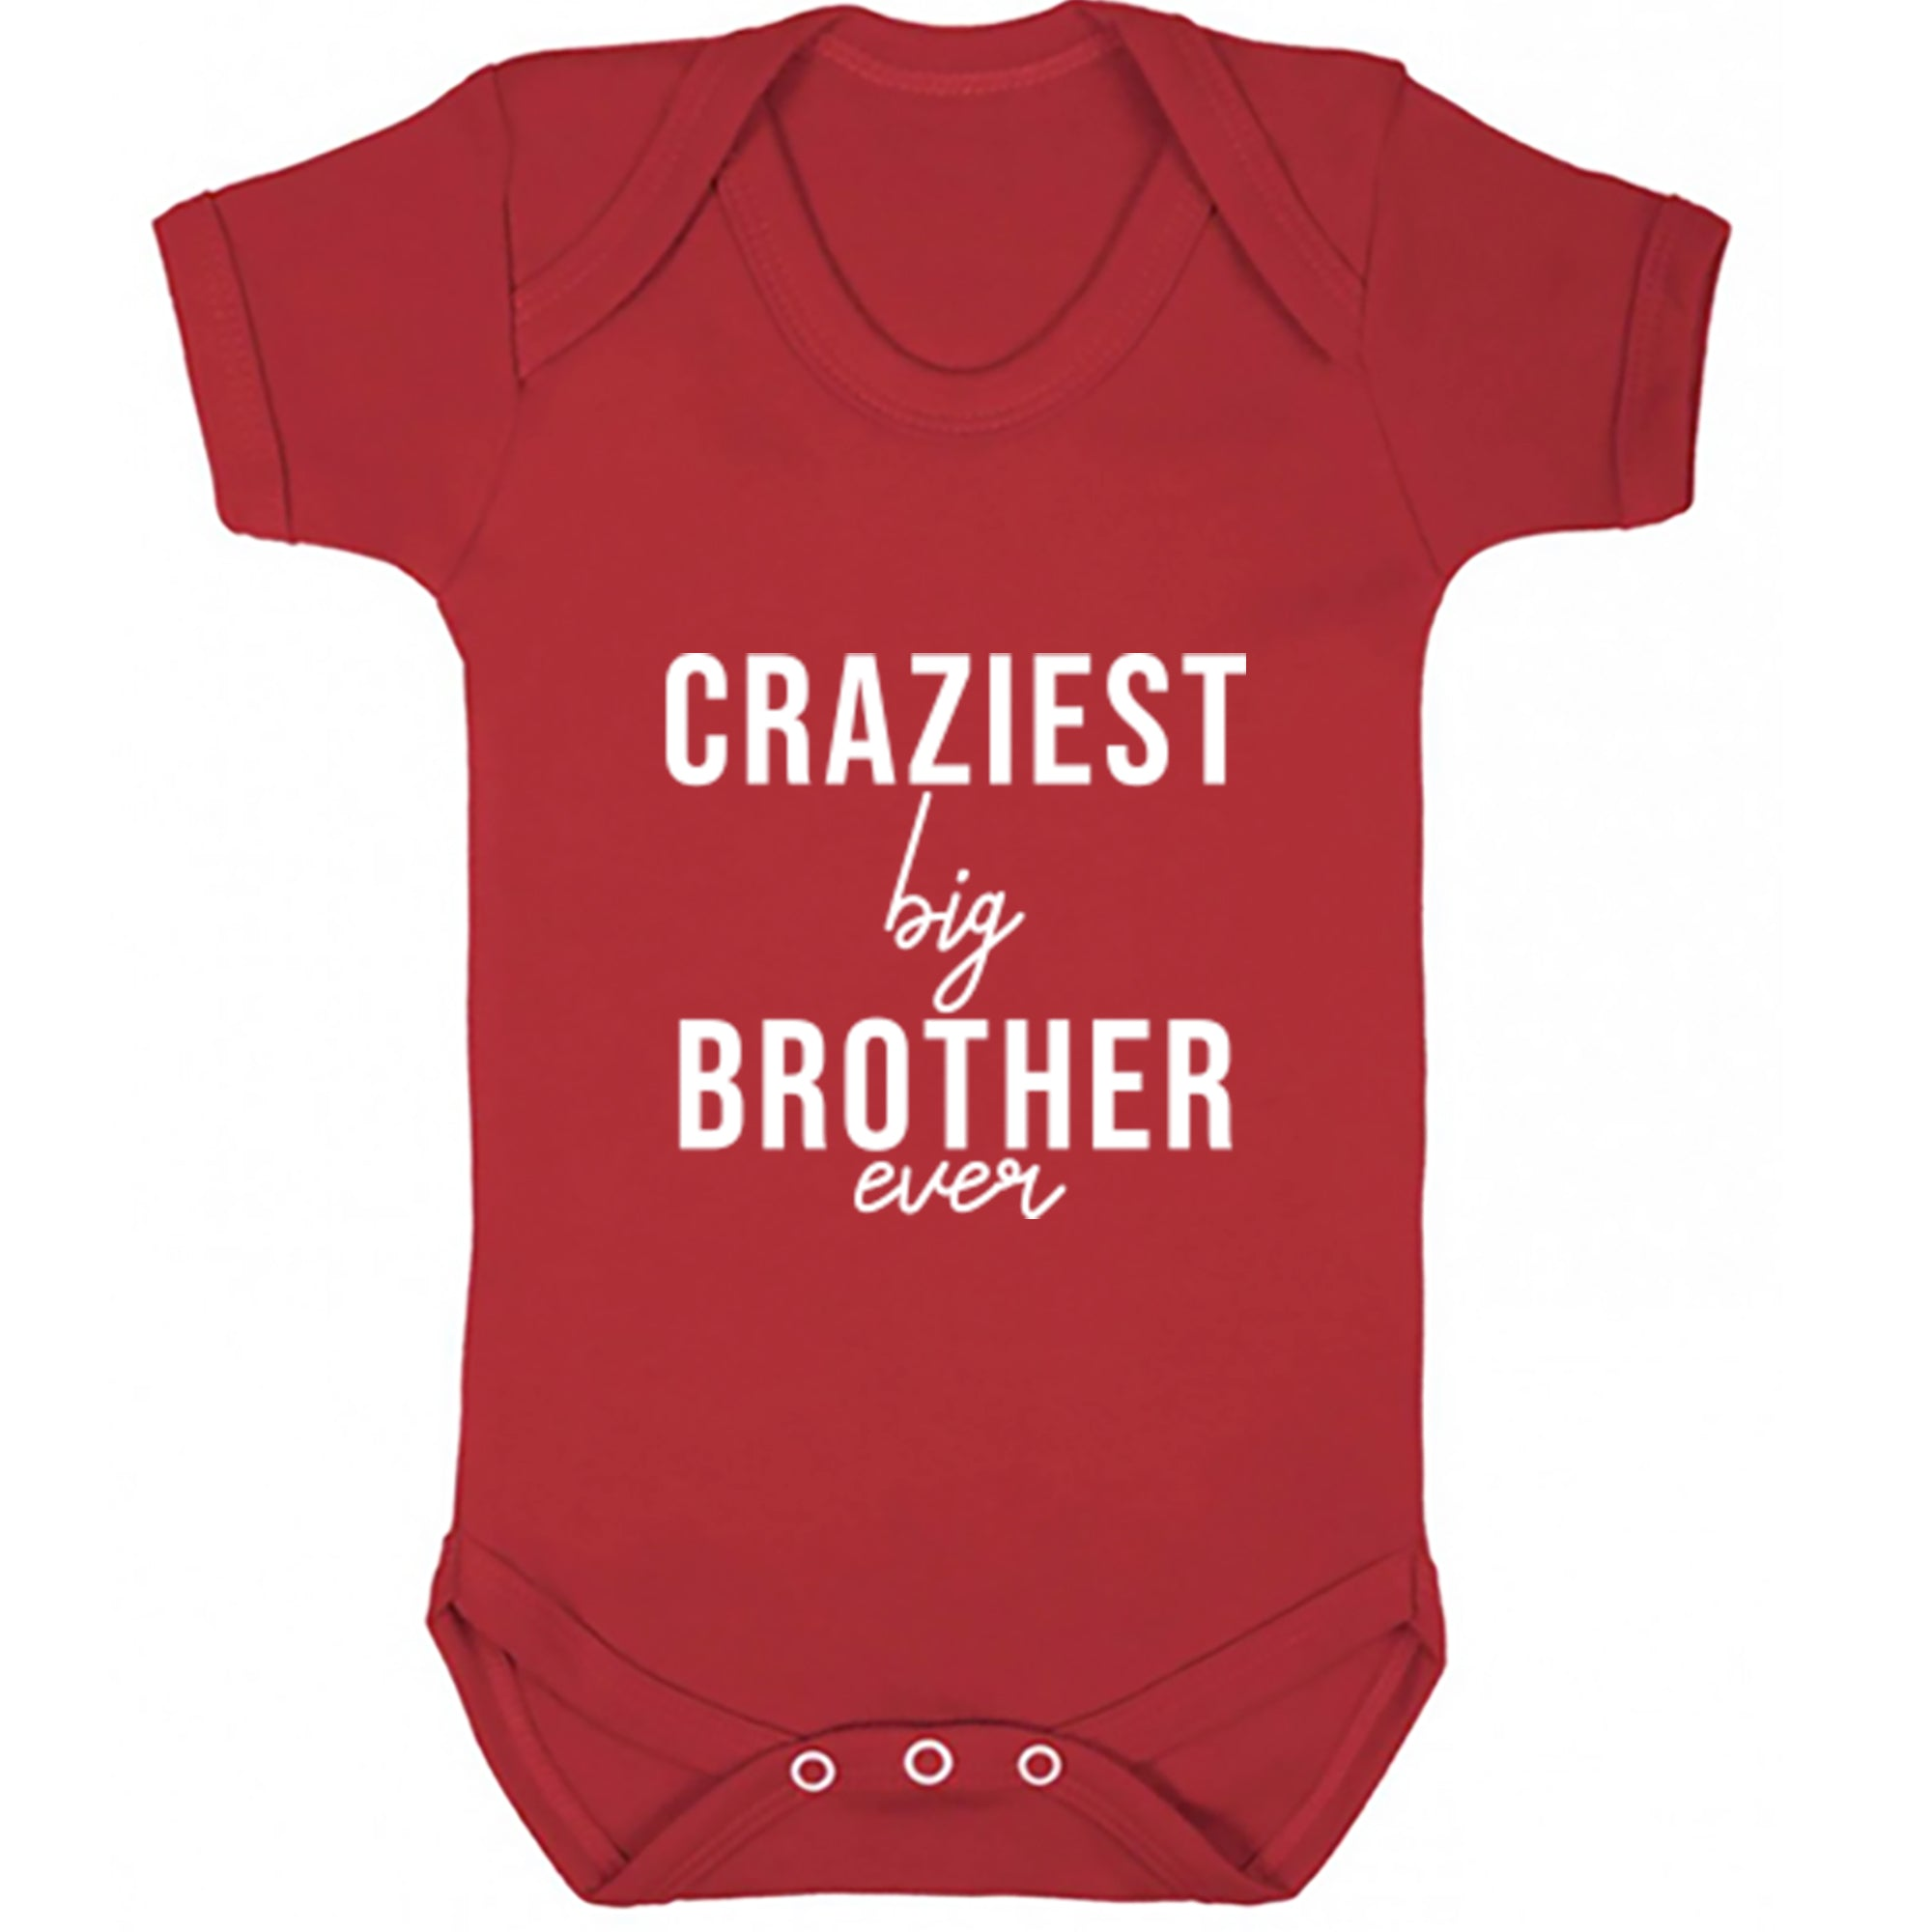 Craziest Big Brother Ever Baby Vest S0524 - Illustrated Identity Ltd.